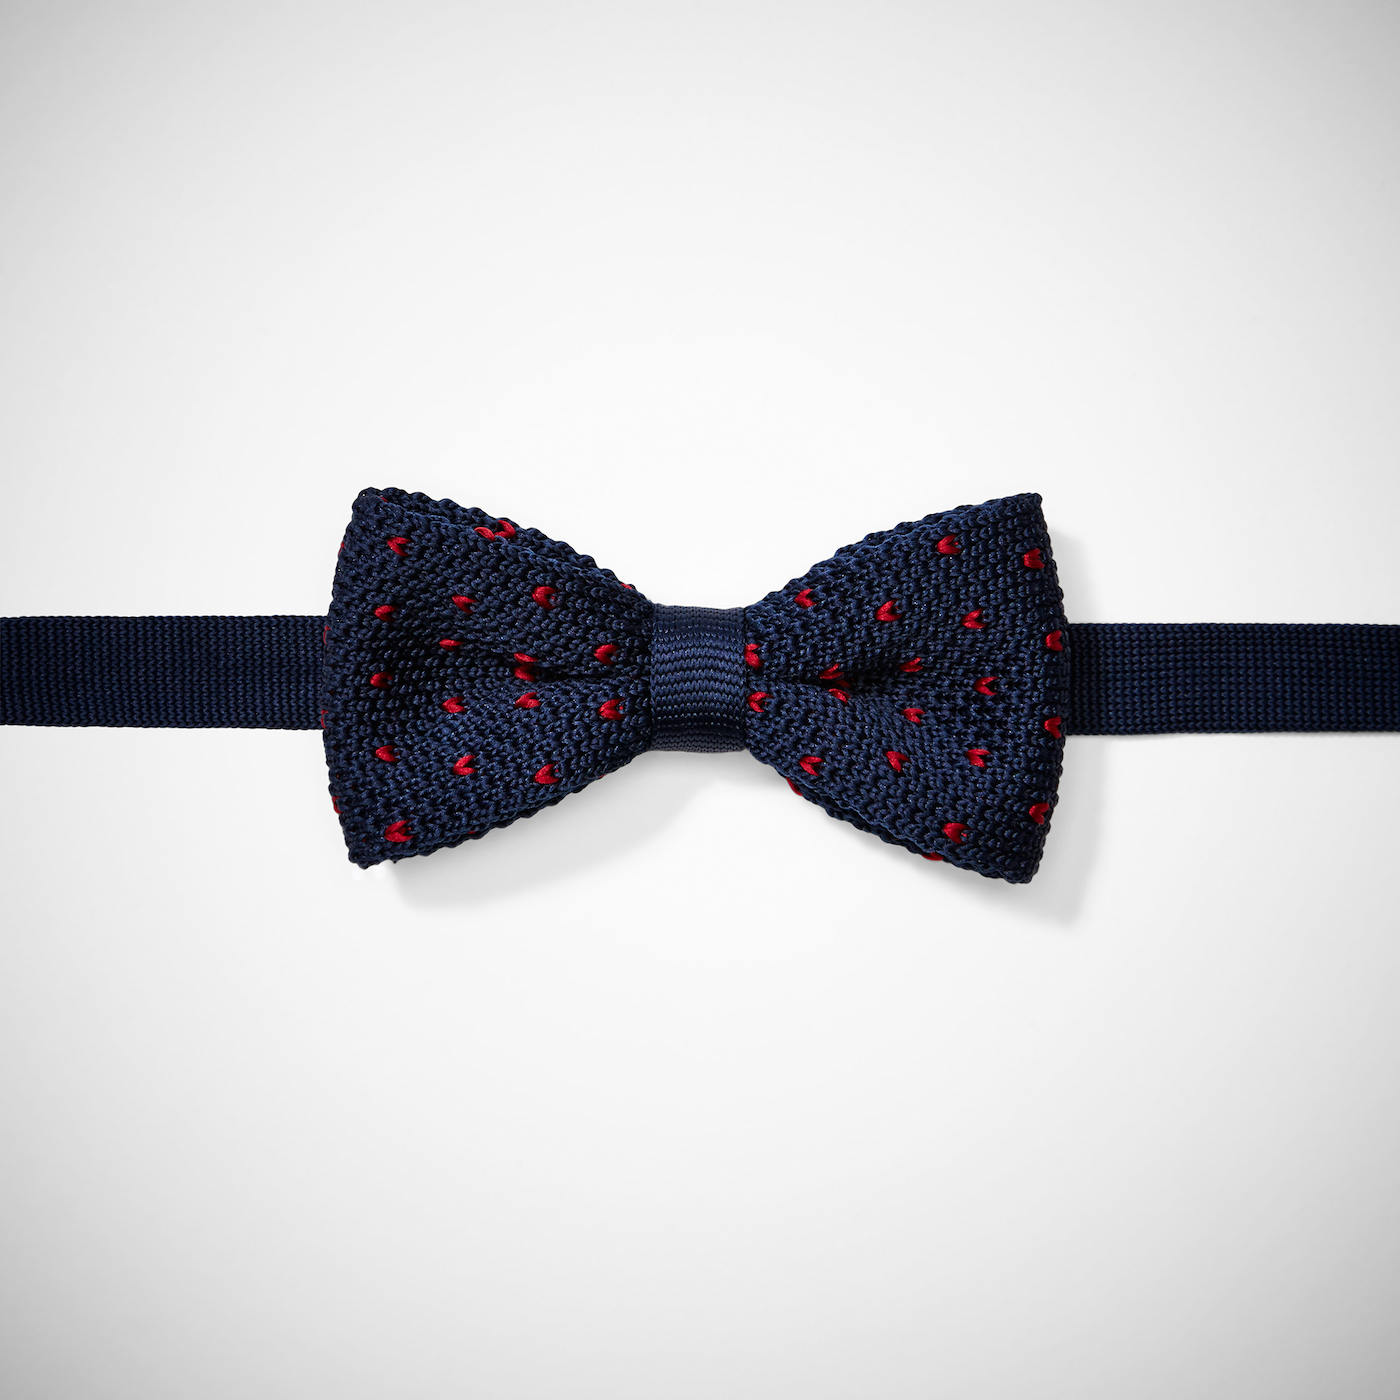 Navy with Red Hearts Silk Knit Bow Tie